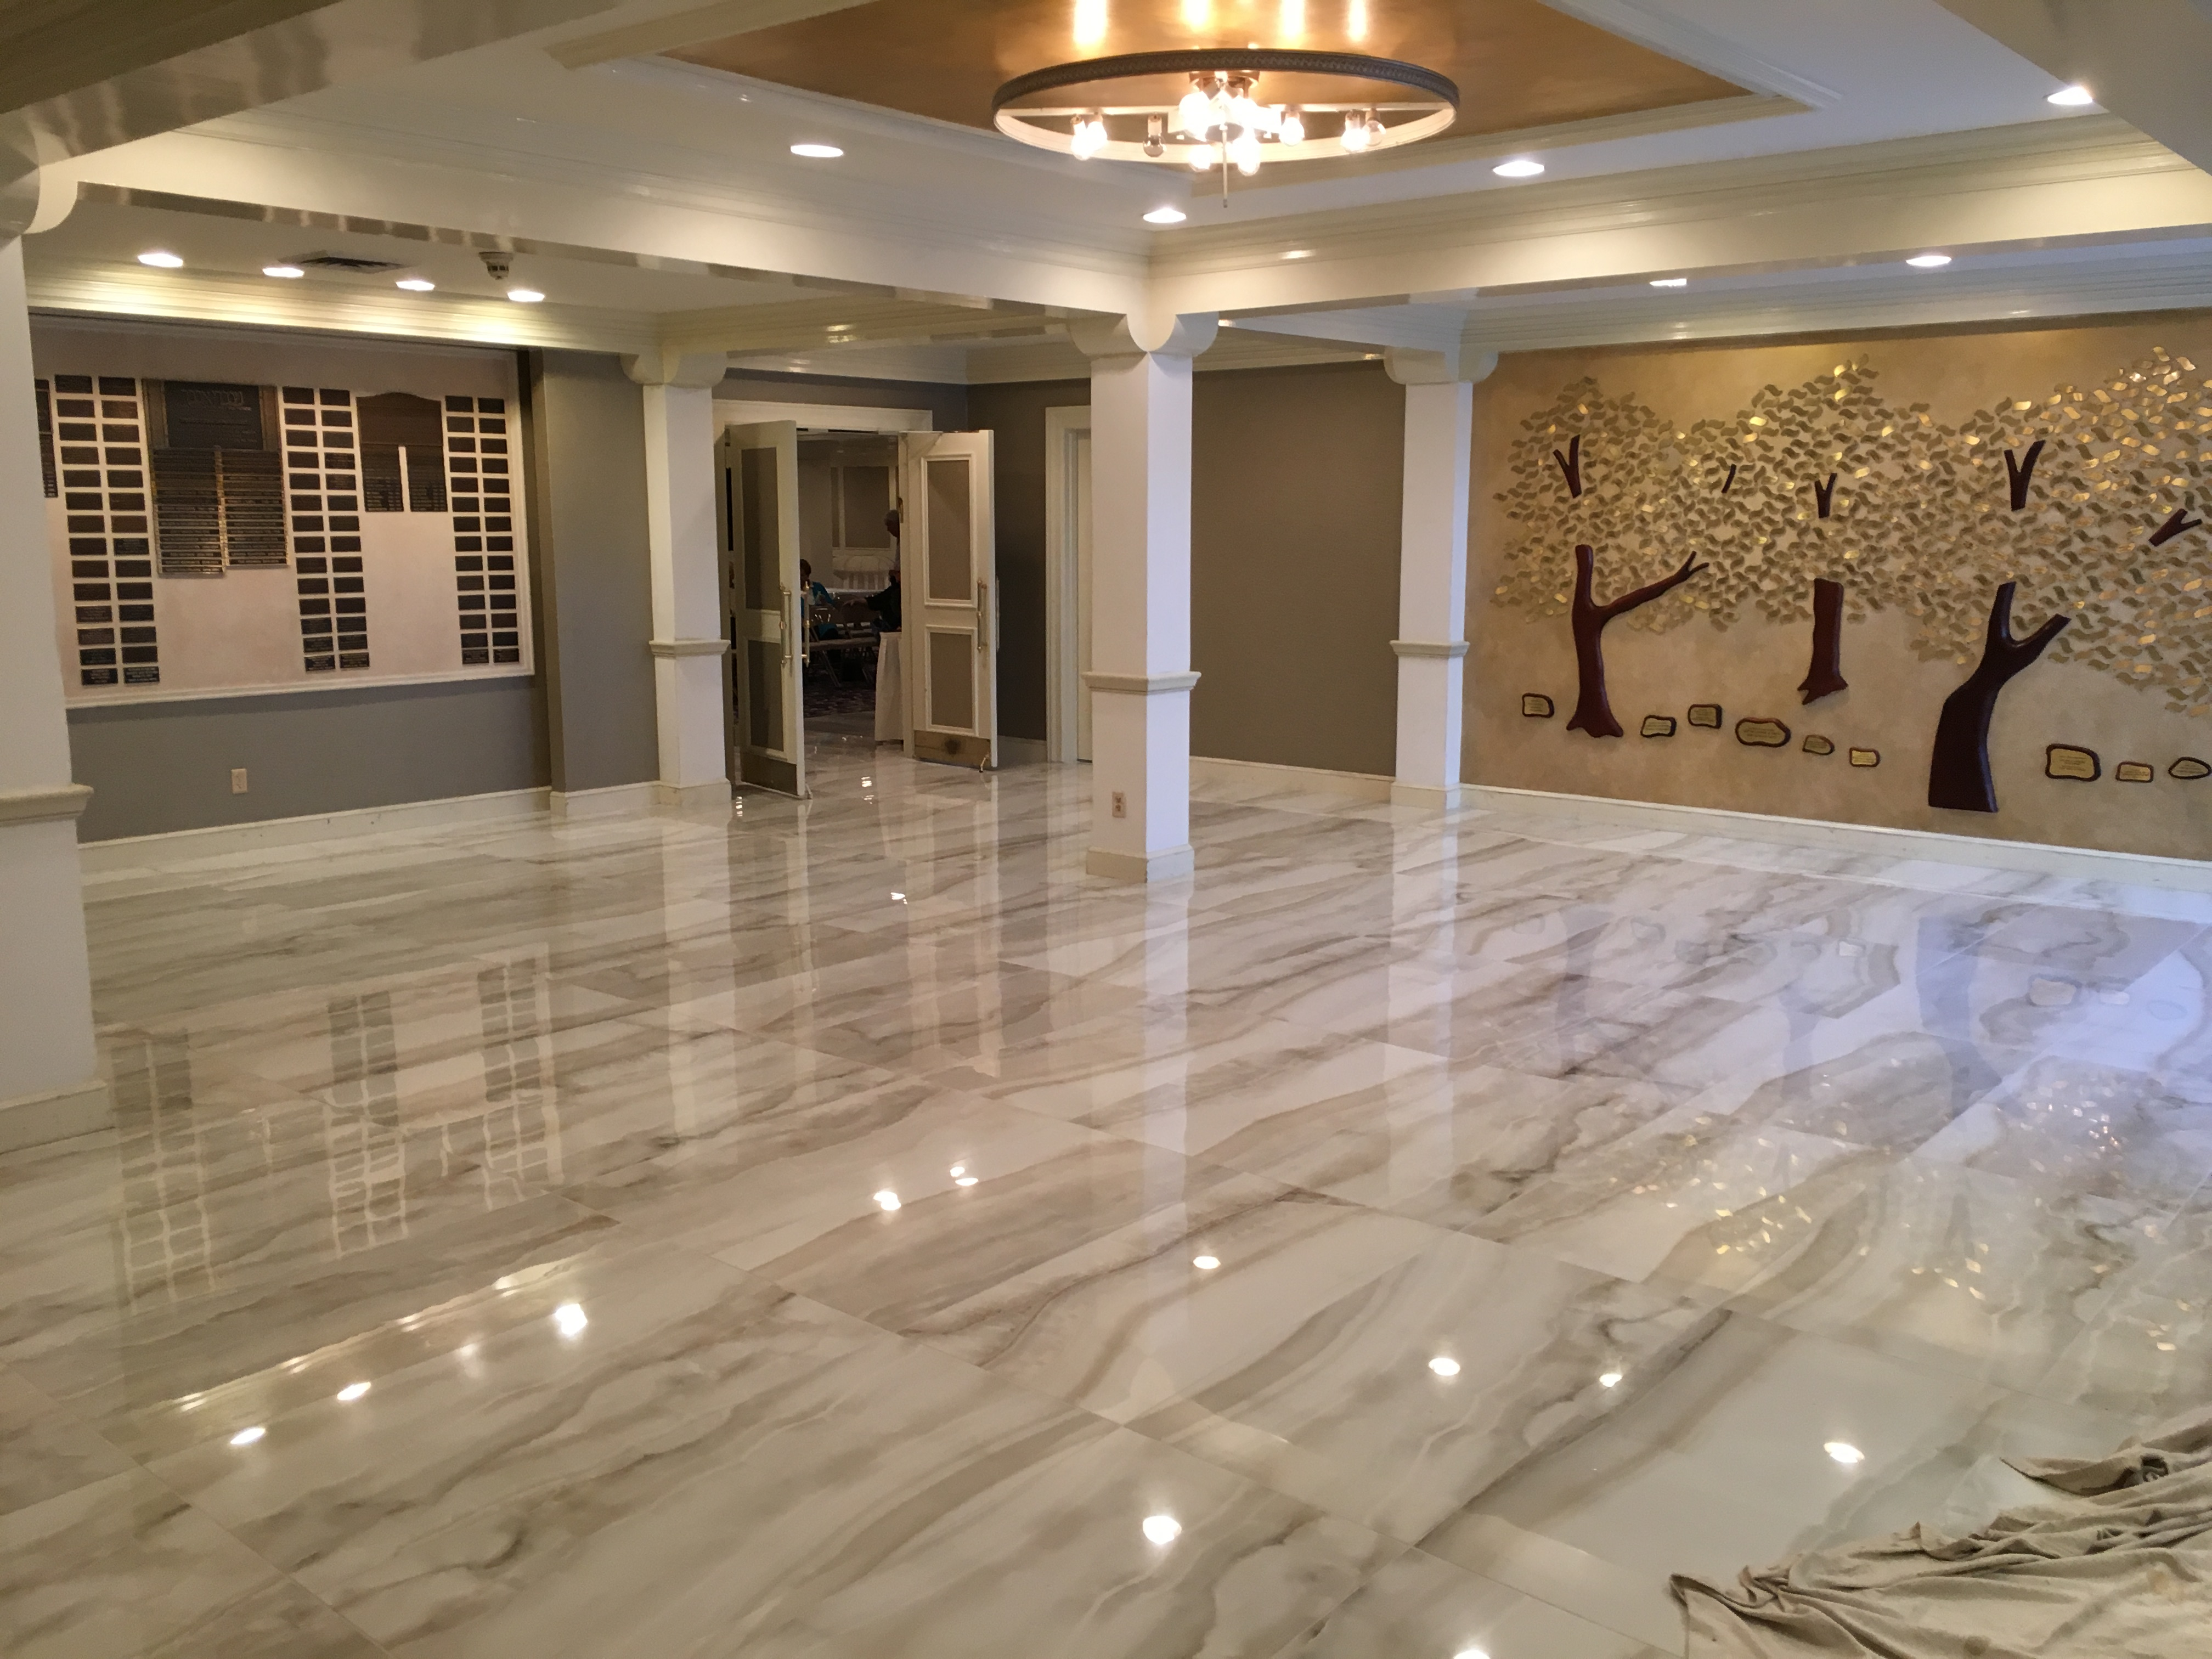 Current Renovation and Remodel  Temple Judea of Manhasset